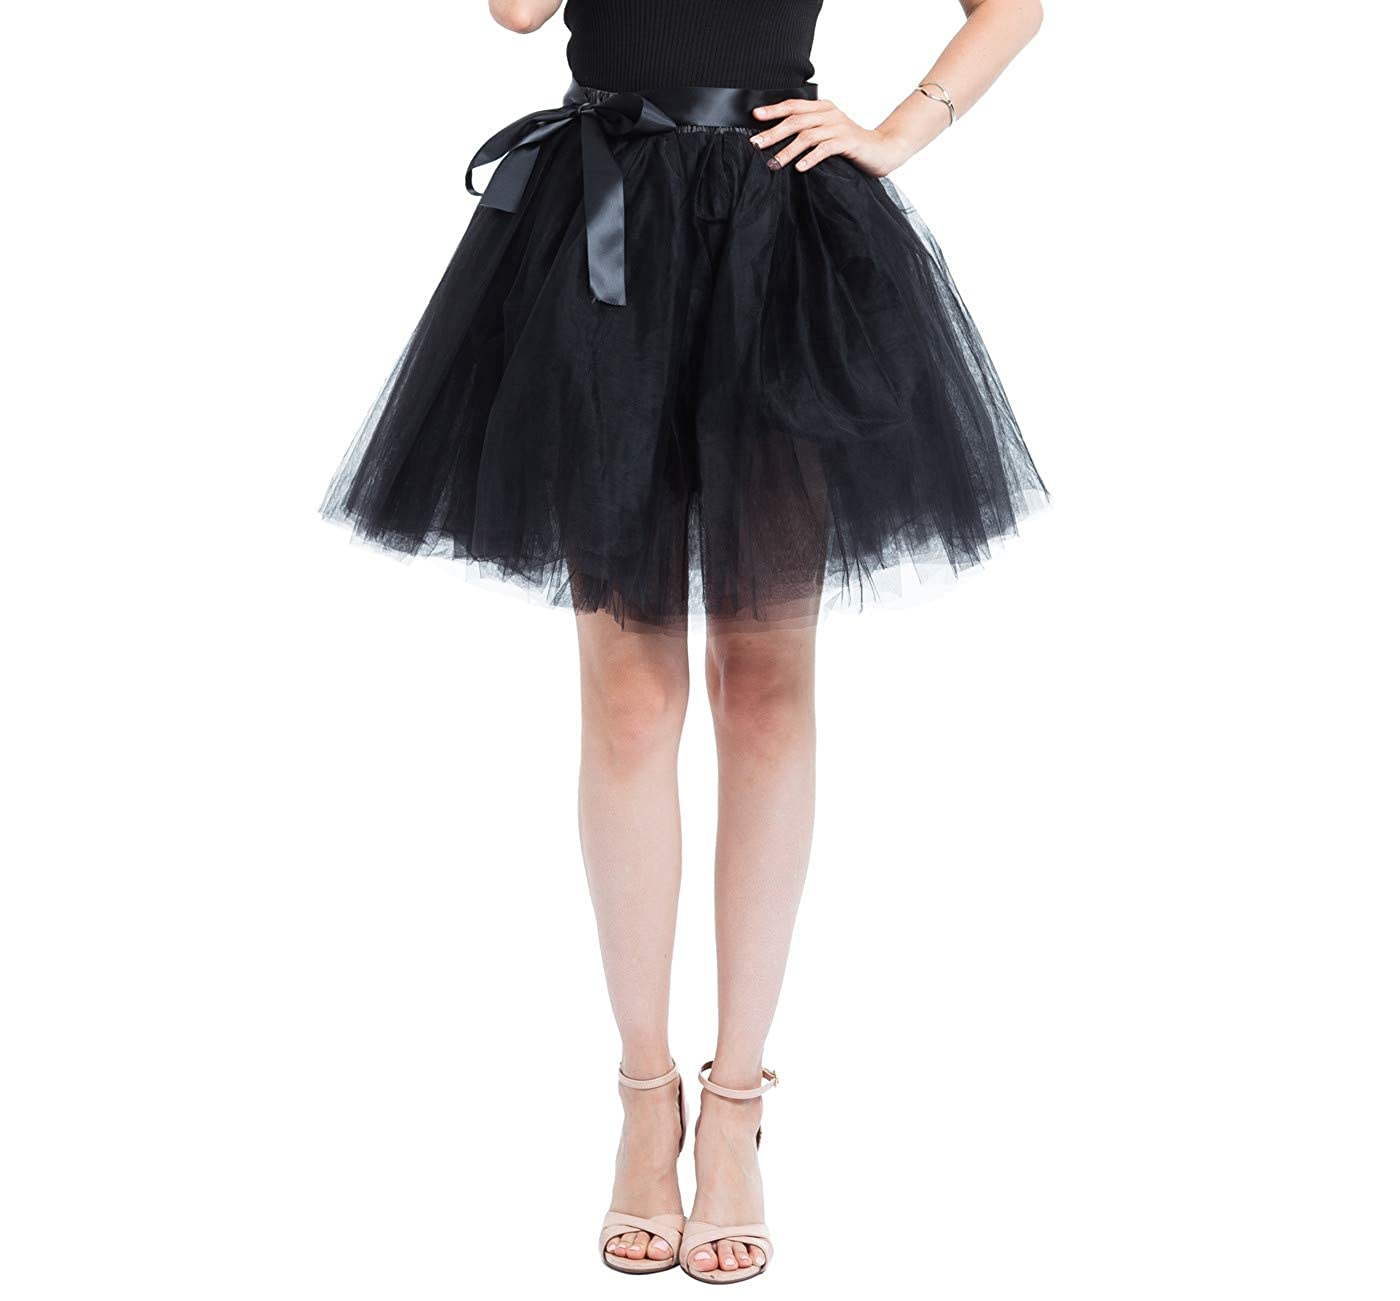 Black Joeoy Women's High Waist Above Knee 7 Layered Bowknot Tutu Tulle Skirt Adult Prom Party Skirt